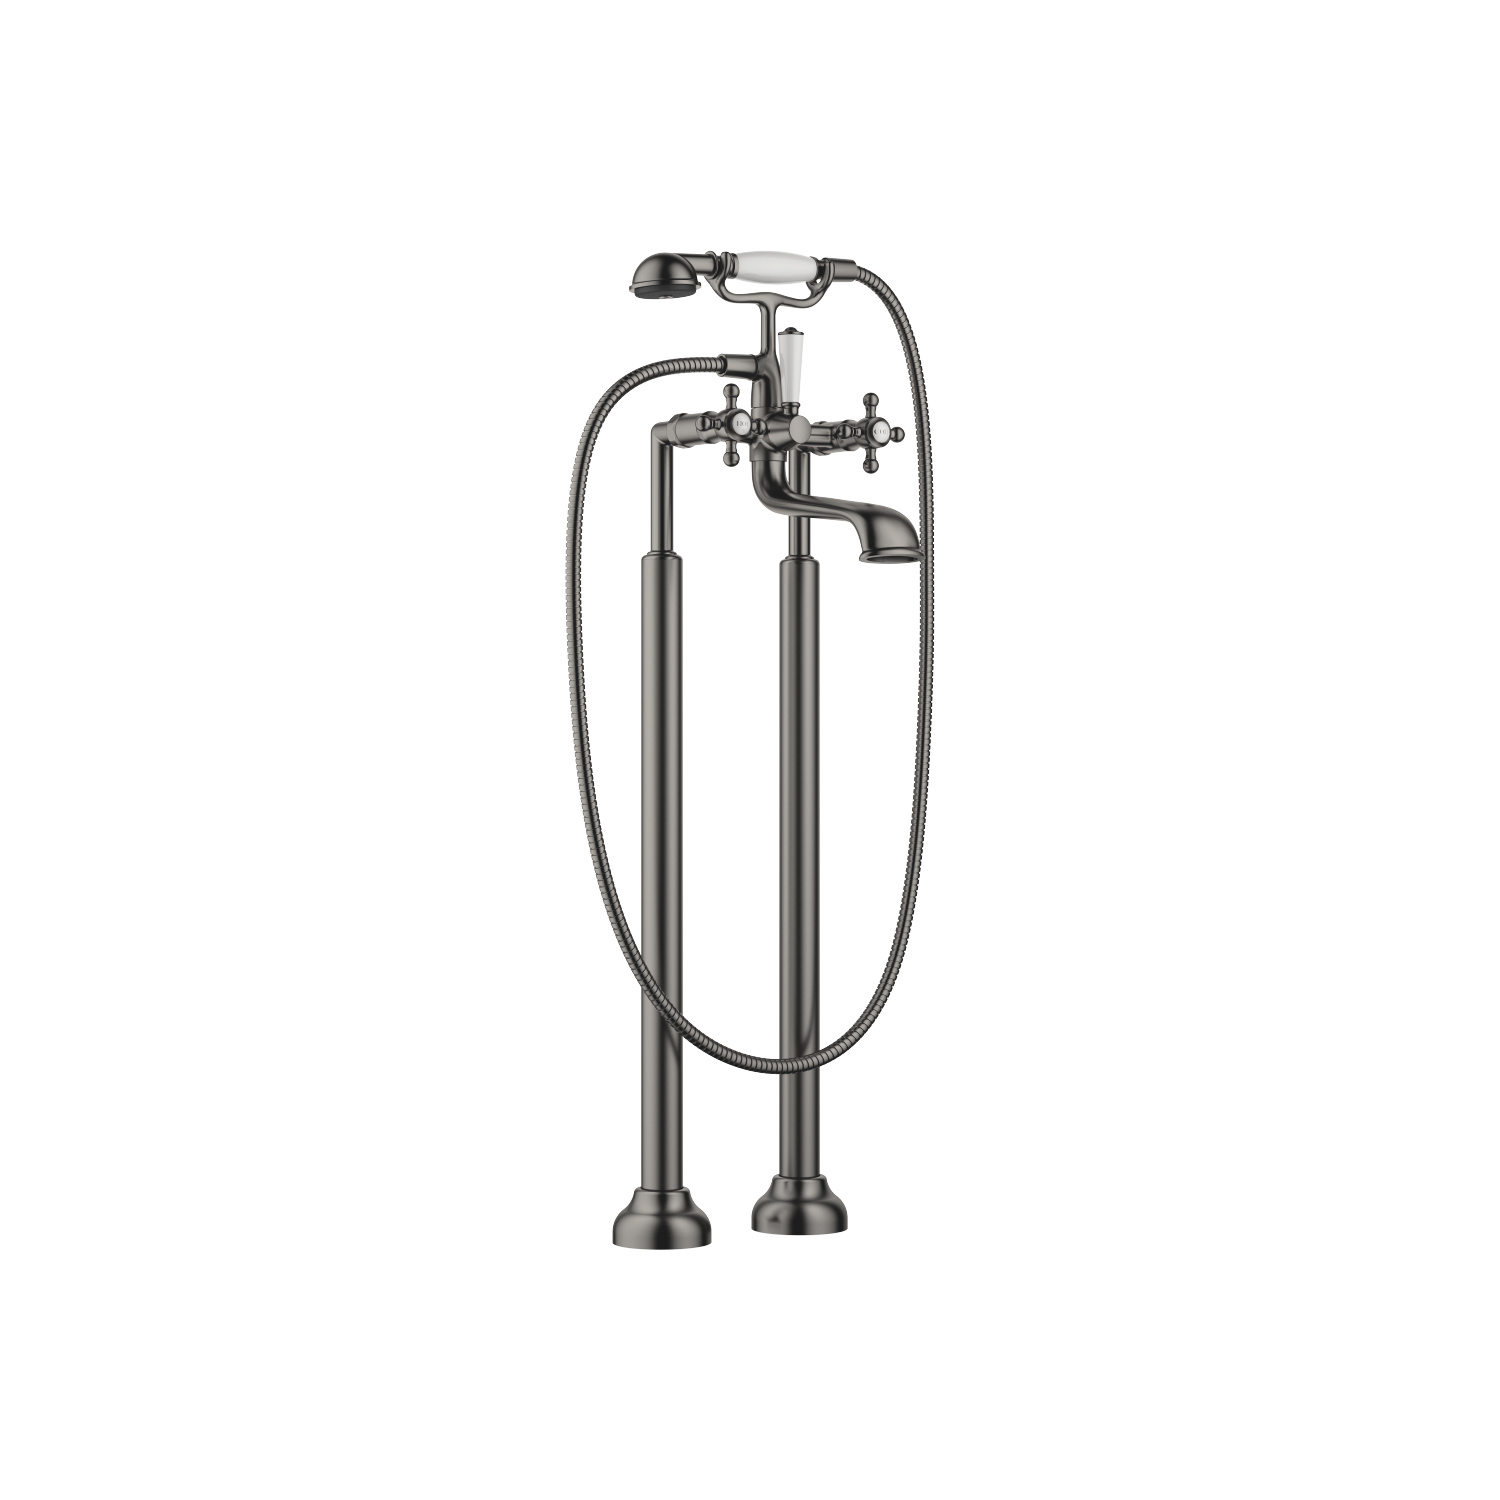 Two-hole tub mixer for freestanding installation with hand shower set - Dark Platinum matte